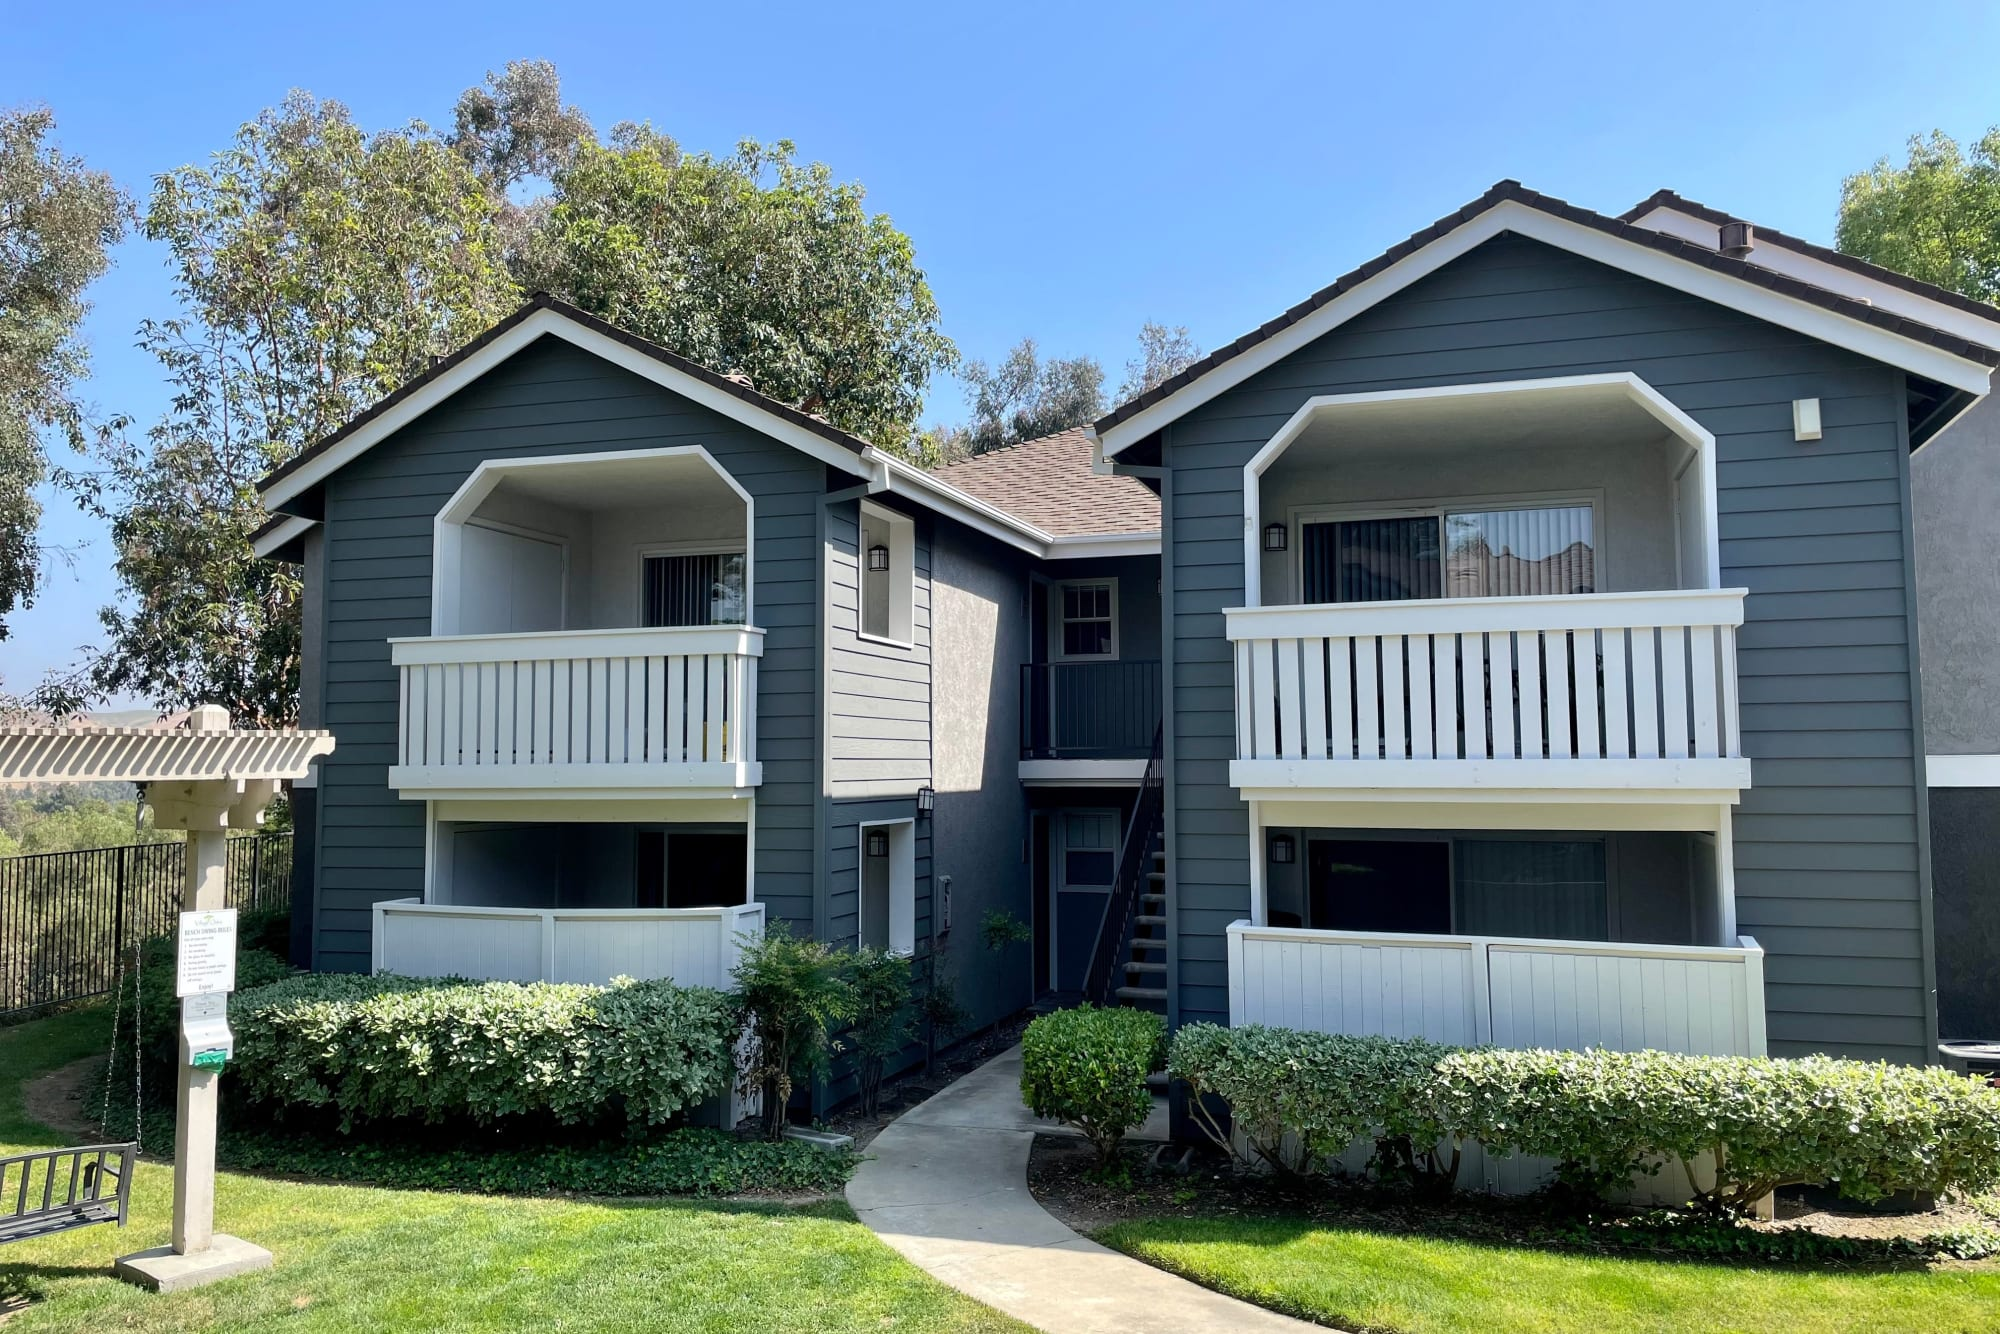 Building Exterior with New Paint at Village Oaks in Chino Hills, California